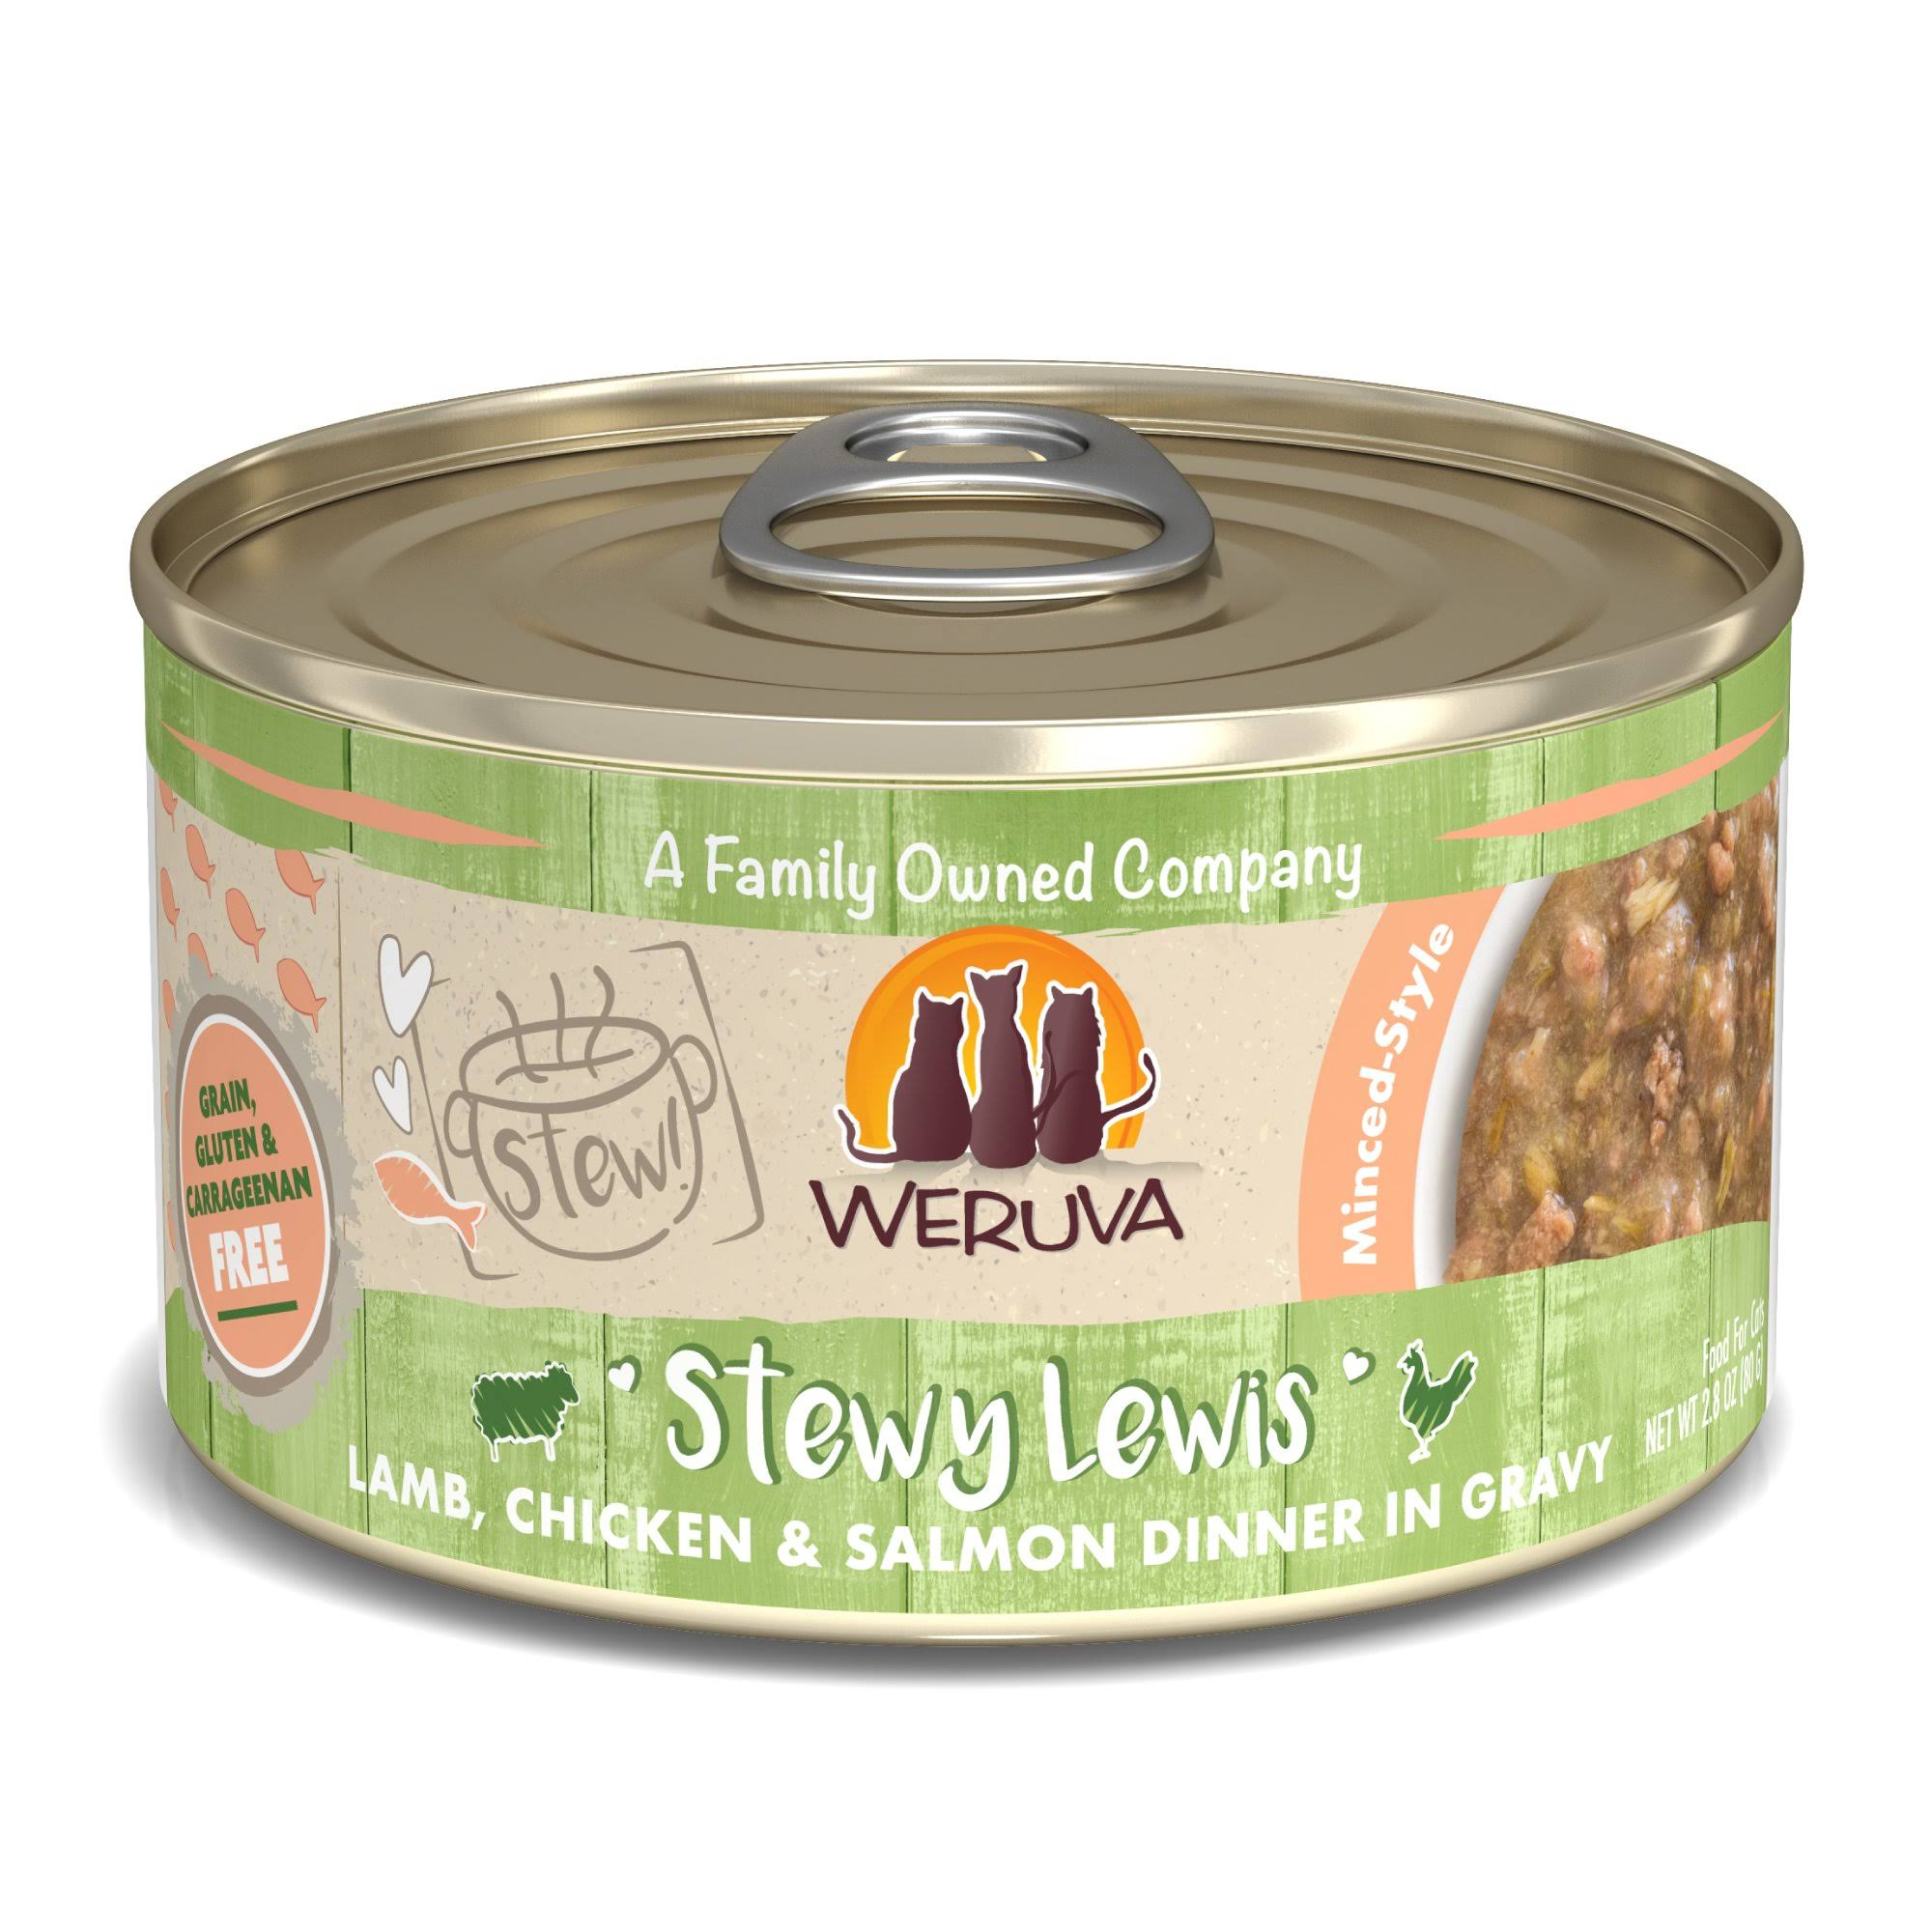 Weruva Stew! Stewy Lewis Lamb, Chicken & Salmon Dinner in Gravy Food for Cats - 2.8 oz